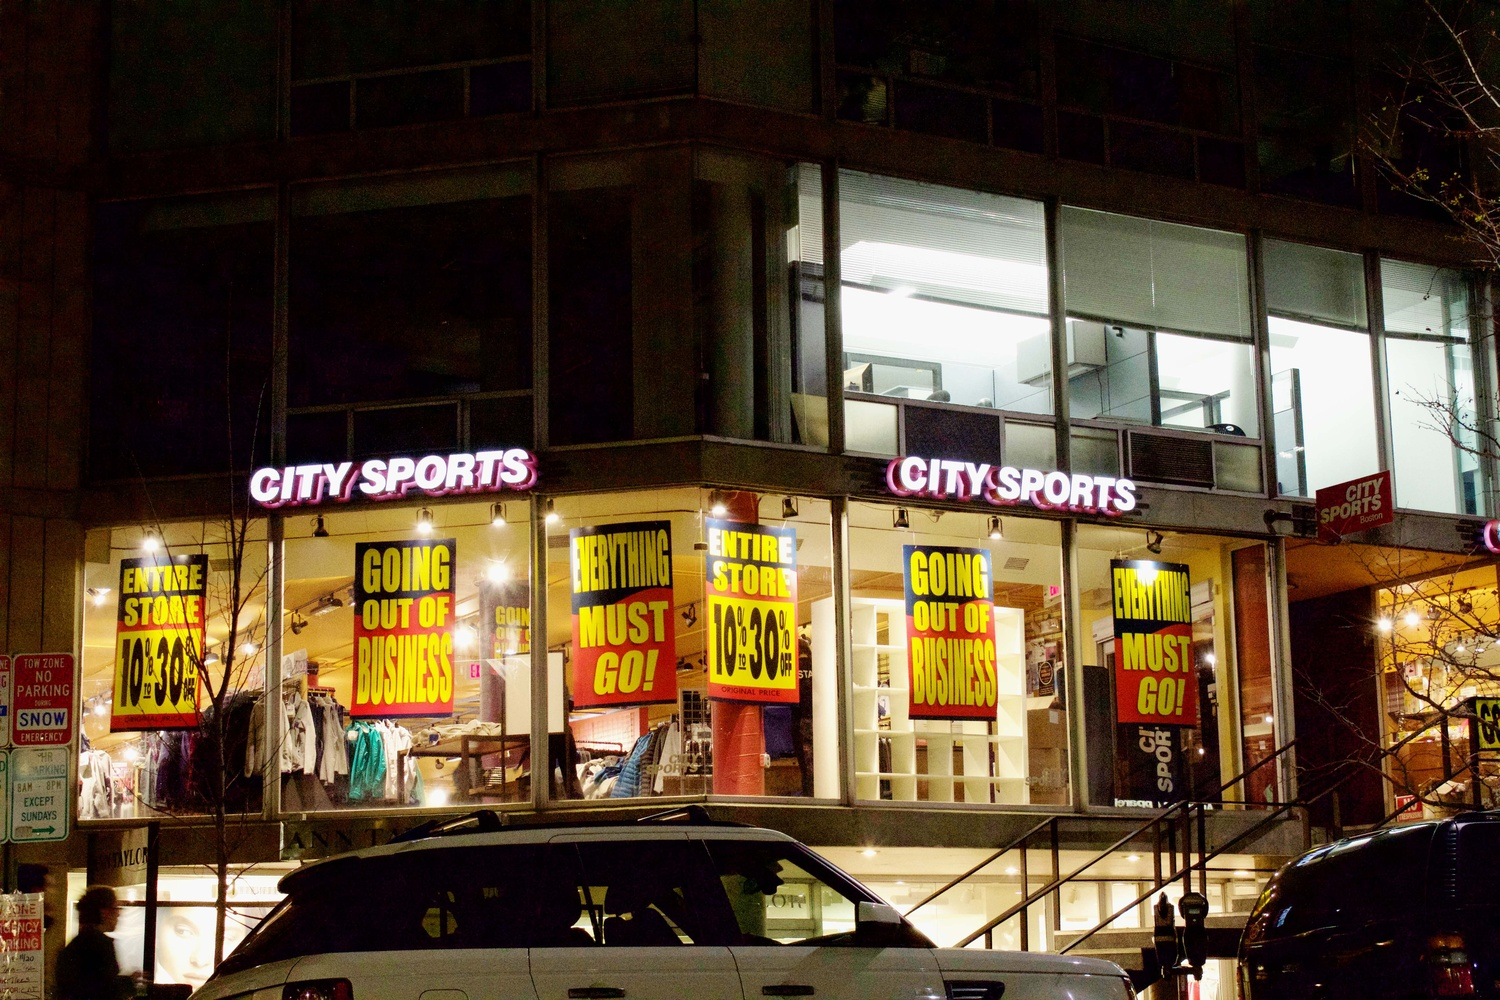 City Sports advertises a going-out-of-business sale at its Brattle Street location on Tuesday, November 17, 2015.